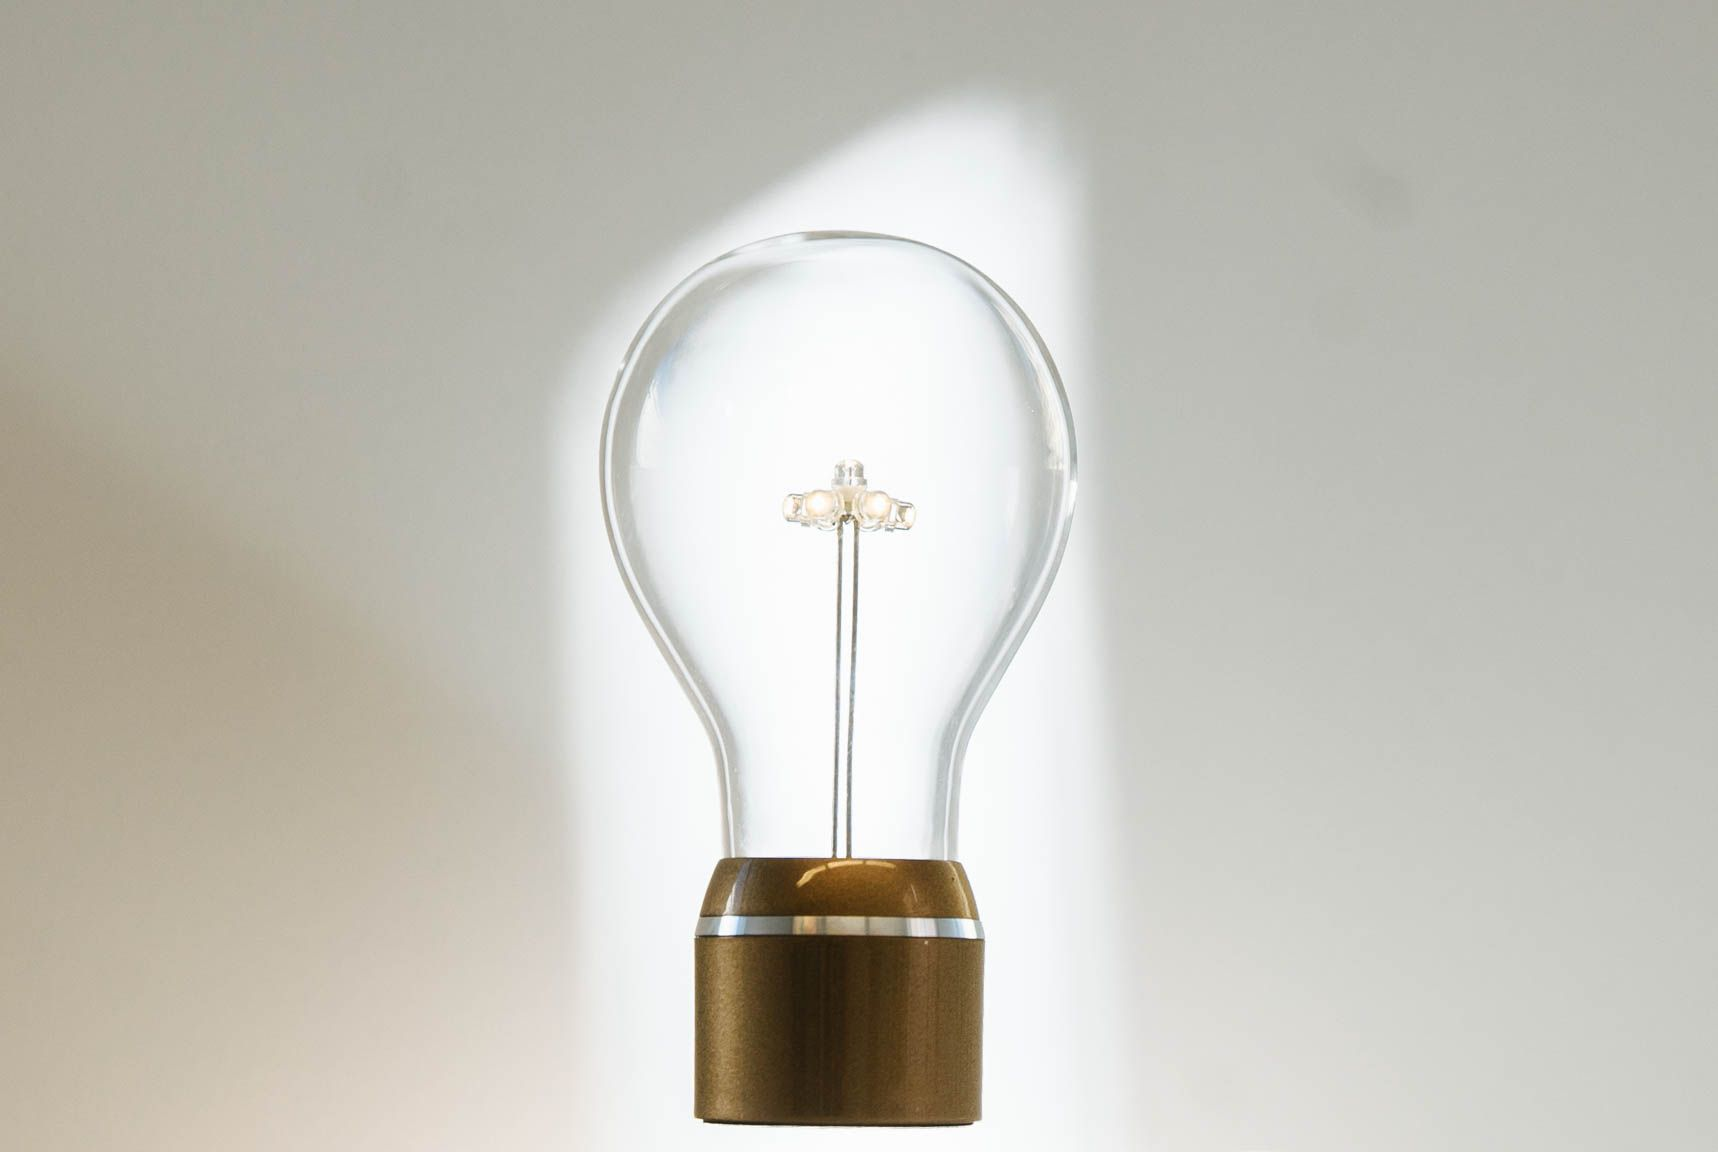 The Shadows Are Aligning Perfectly Behind Flyte The Levitating Ligh Bulb Bulb Light Bulb Levitation